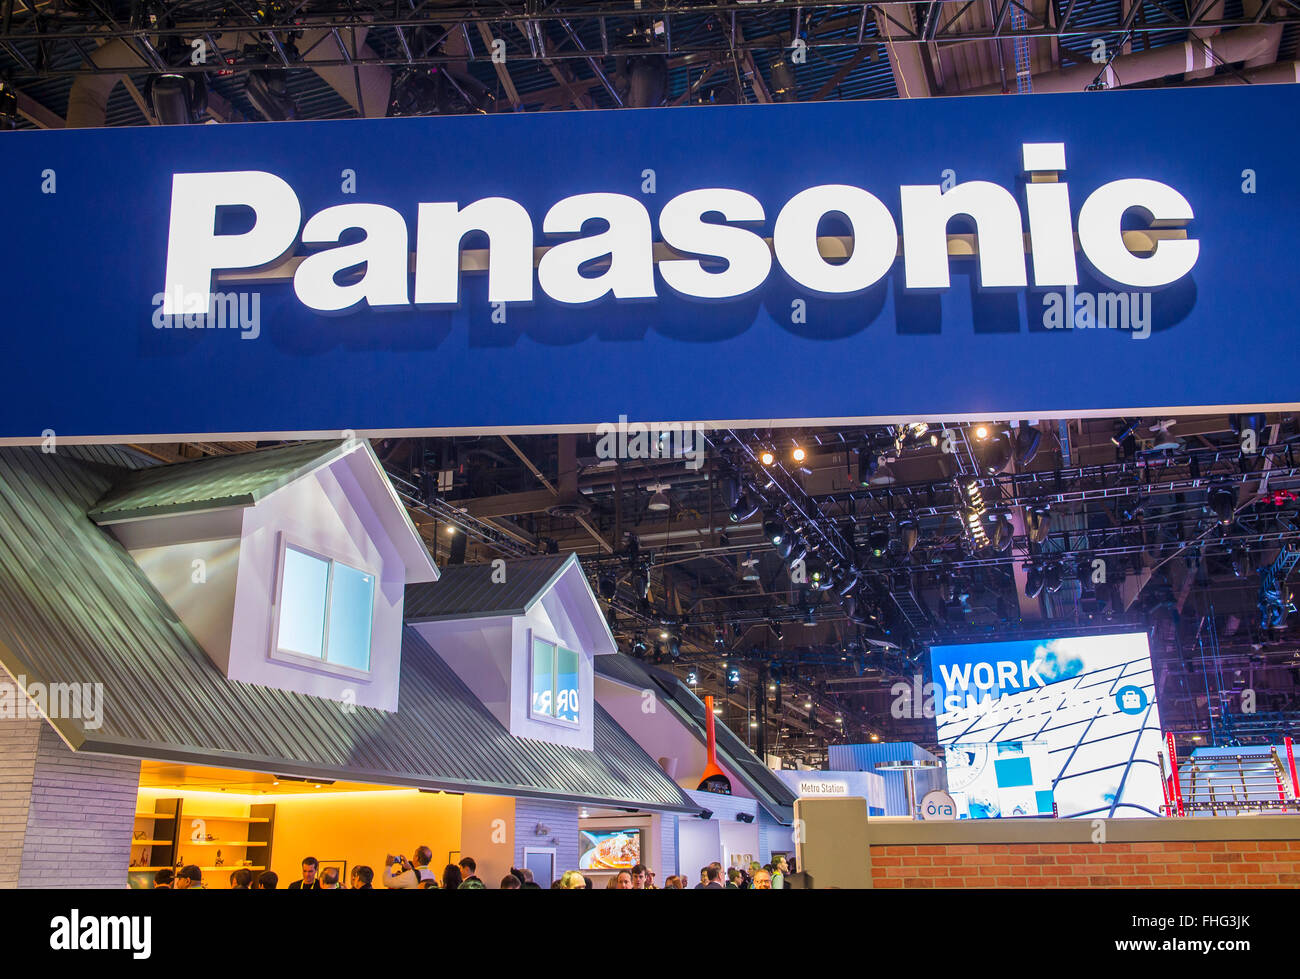 The Panasonic booth at the CES show in Las Vegas - Stock Image